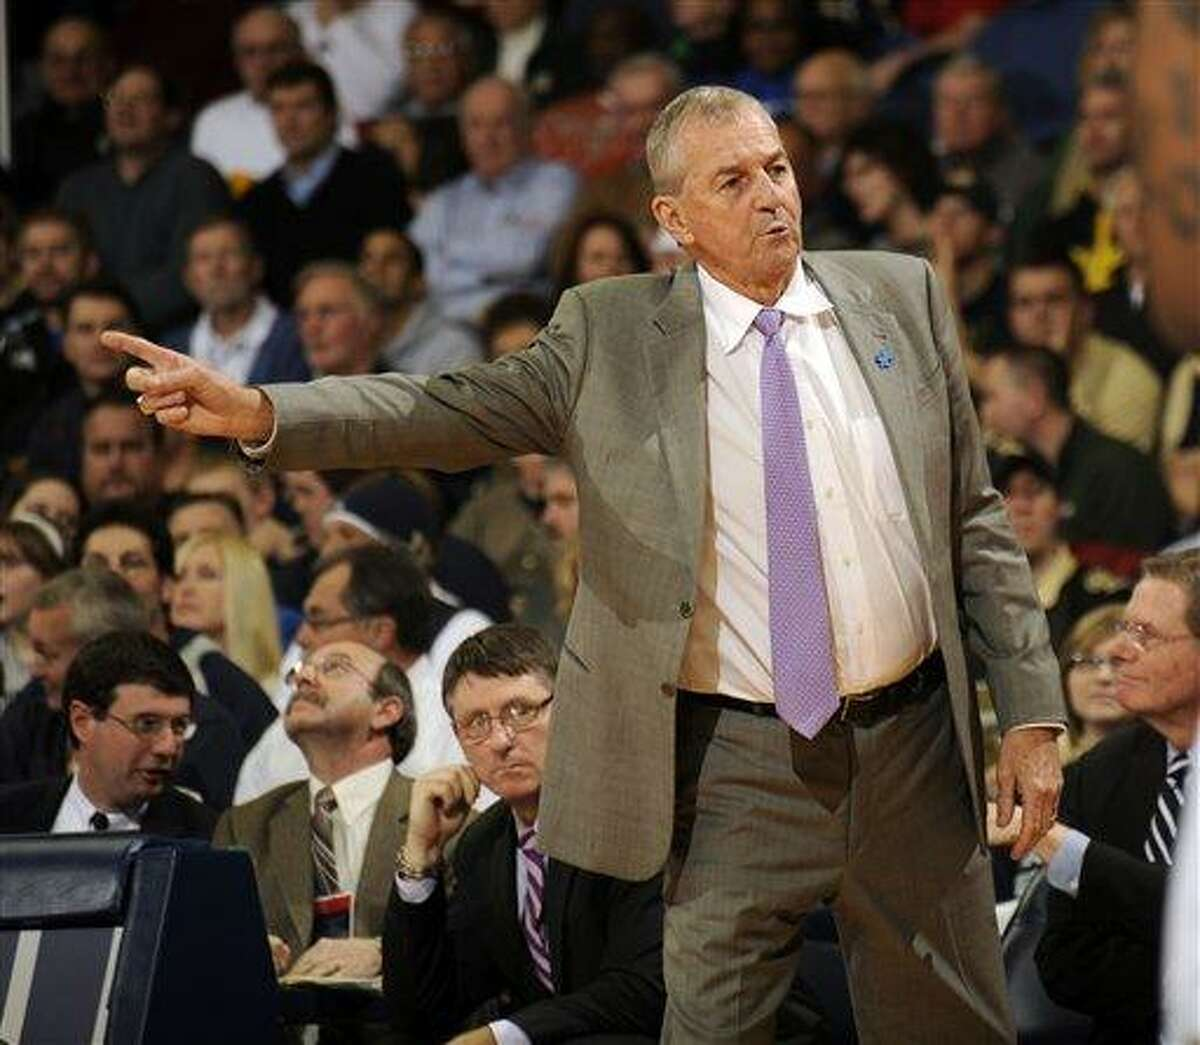 Connecticut coach Jim Calhoun reacts to a call in the second half in a NCAA college basketball game against Notre Dame, Saturday, Jan. 14, 2012, in South Bend, Ind. Connecticut won 67-53. (AP Photo/Joe Raymond)